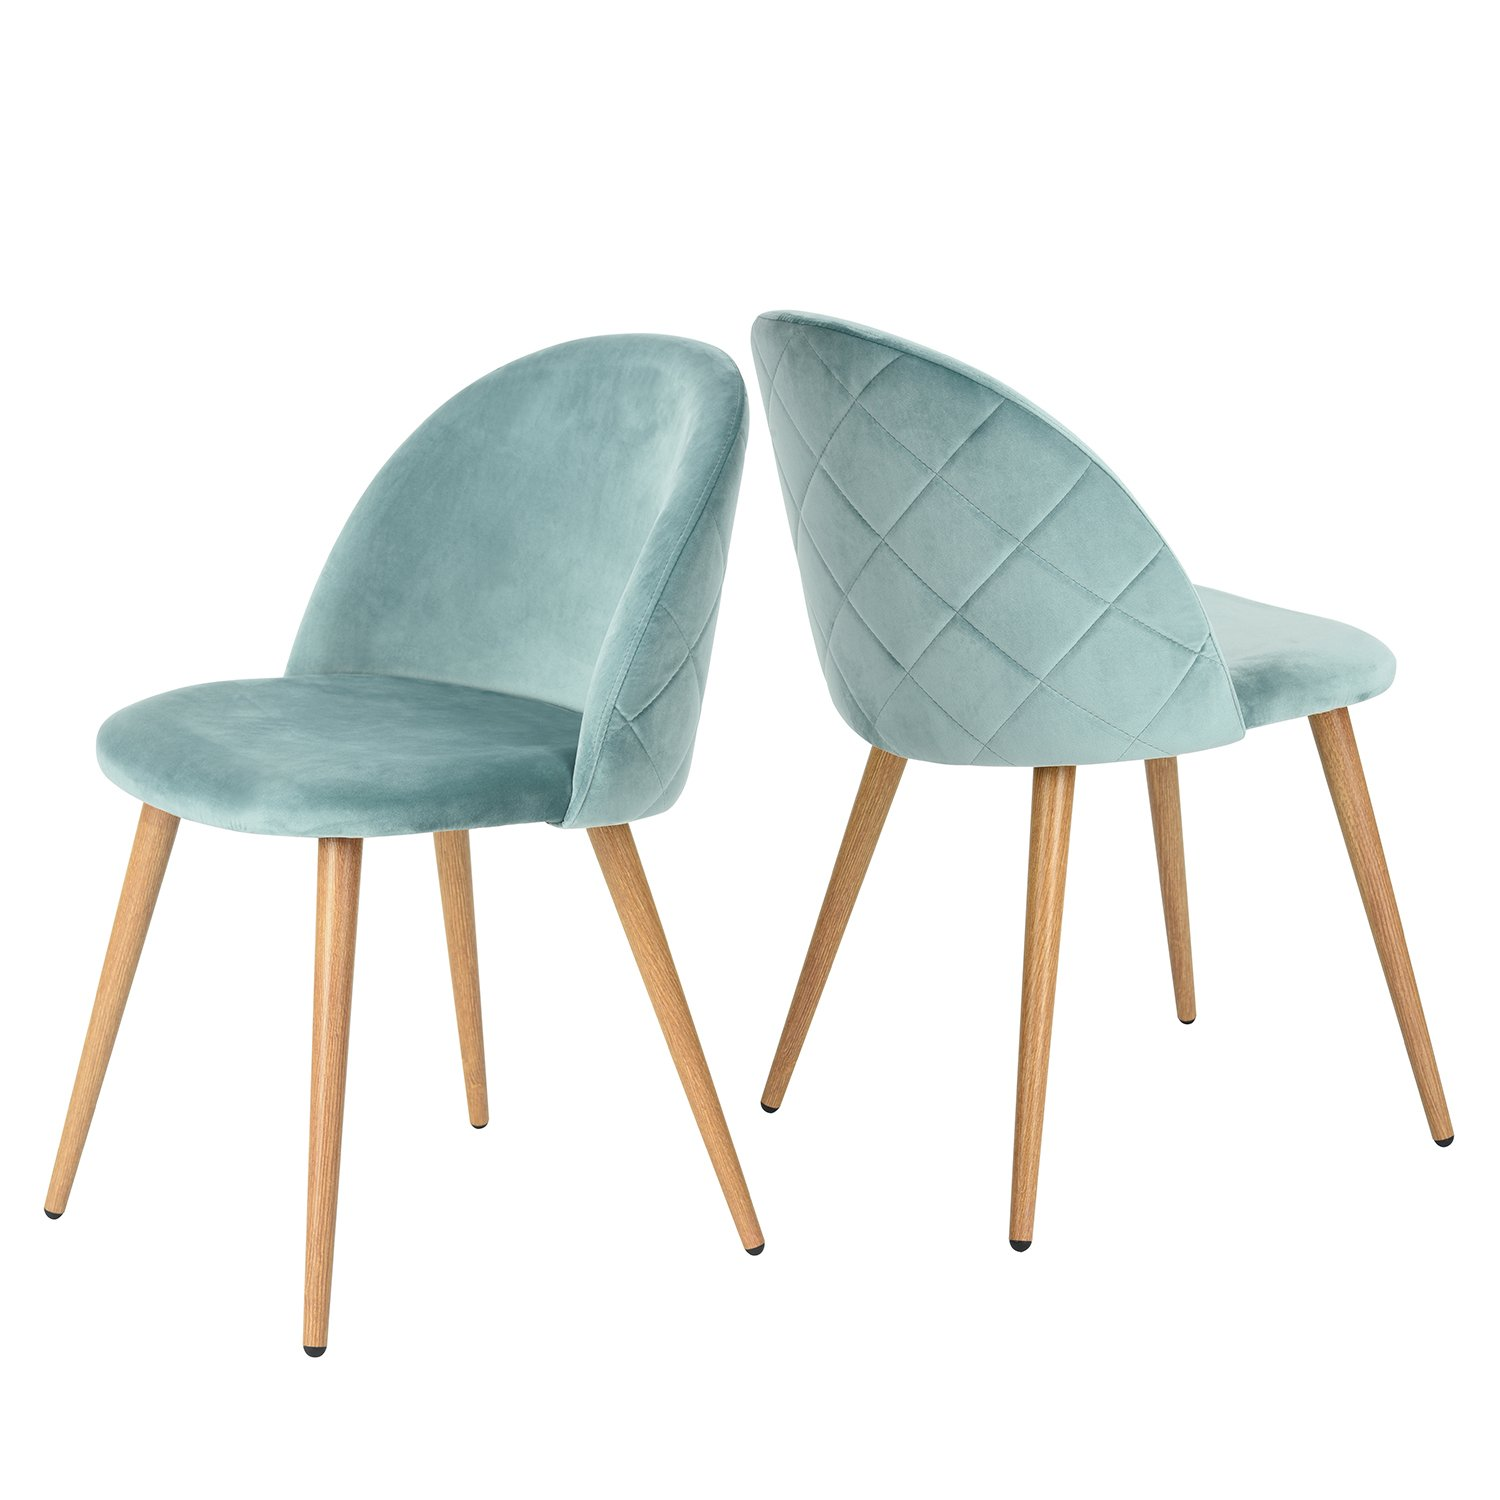 5. GreenForest Living Room Leisure Chair- Set of 2